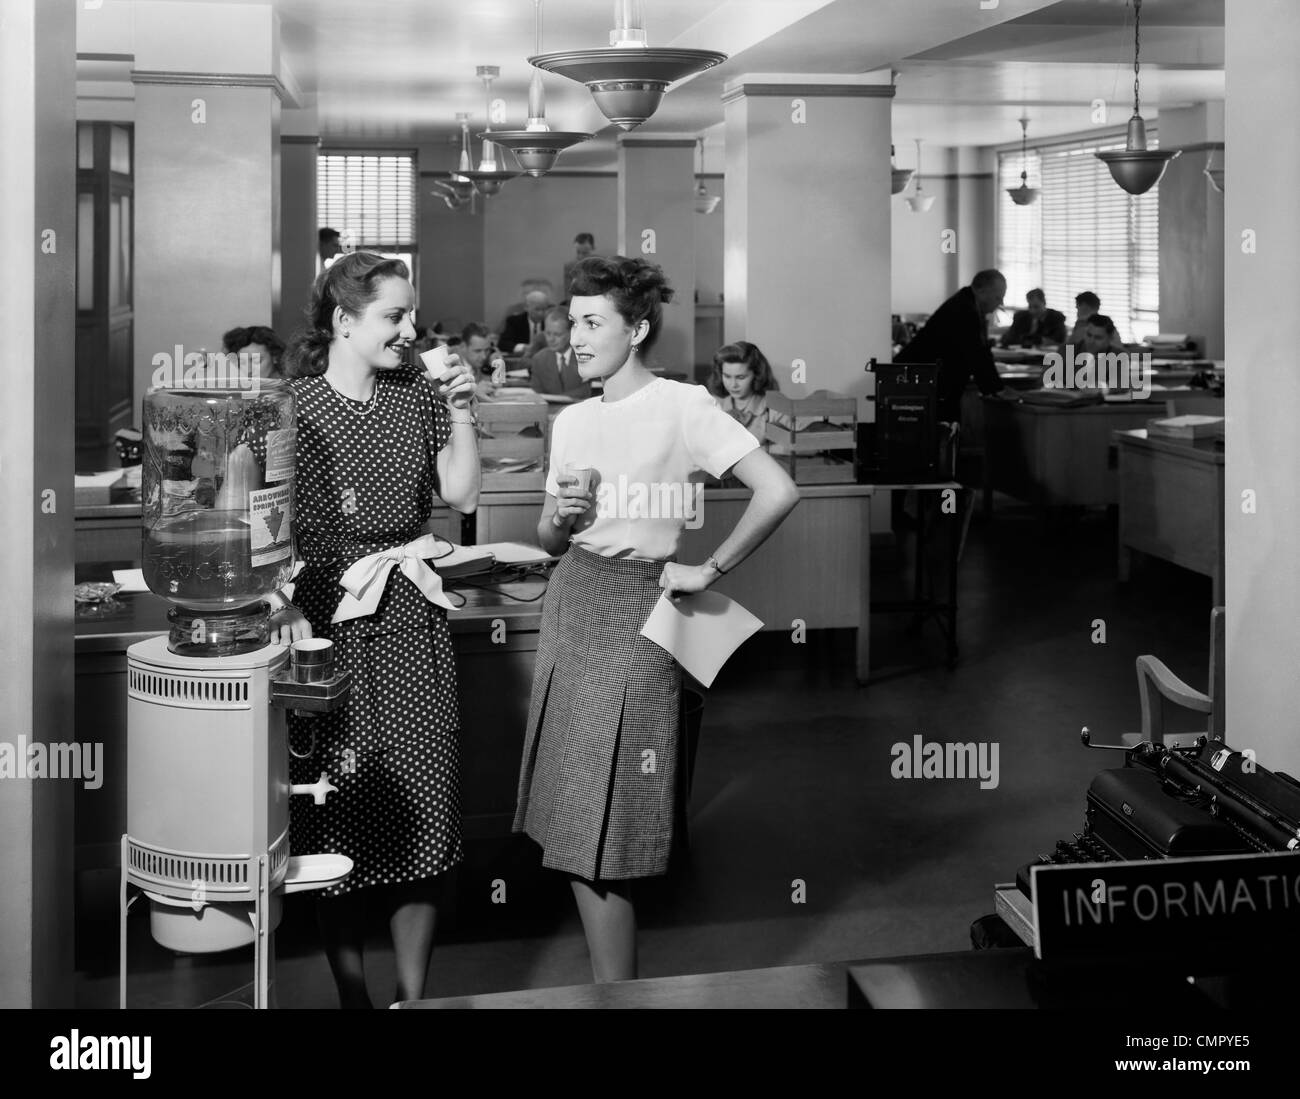 Office workers talking by water cooler in hallway Stock Photo ...